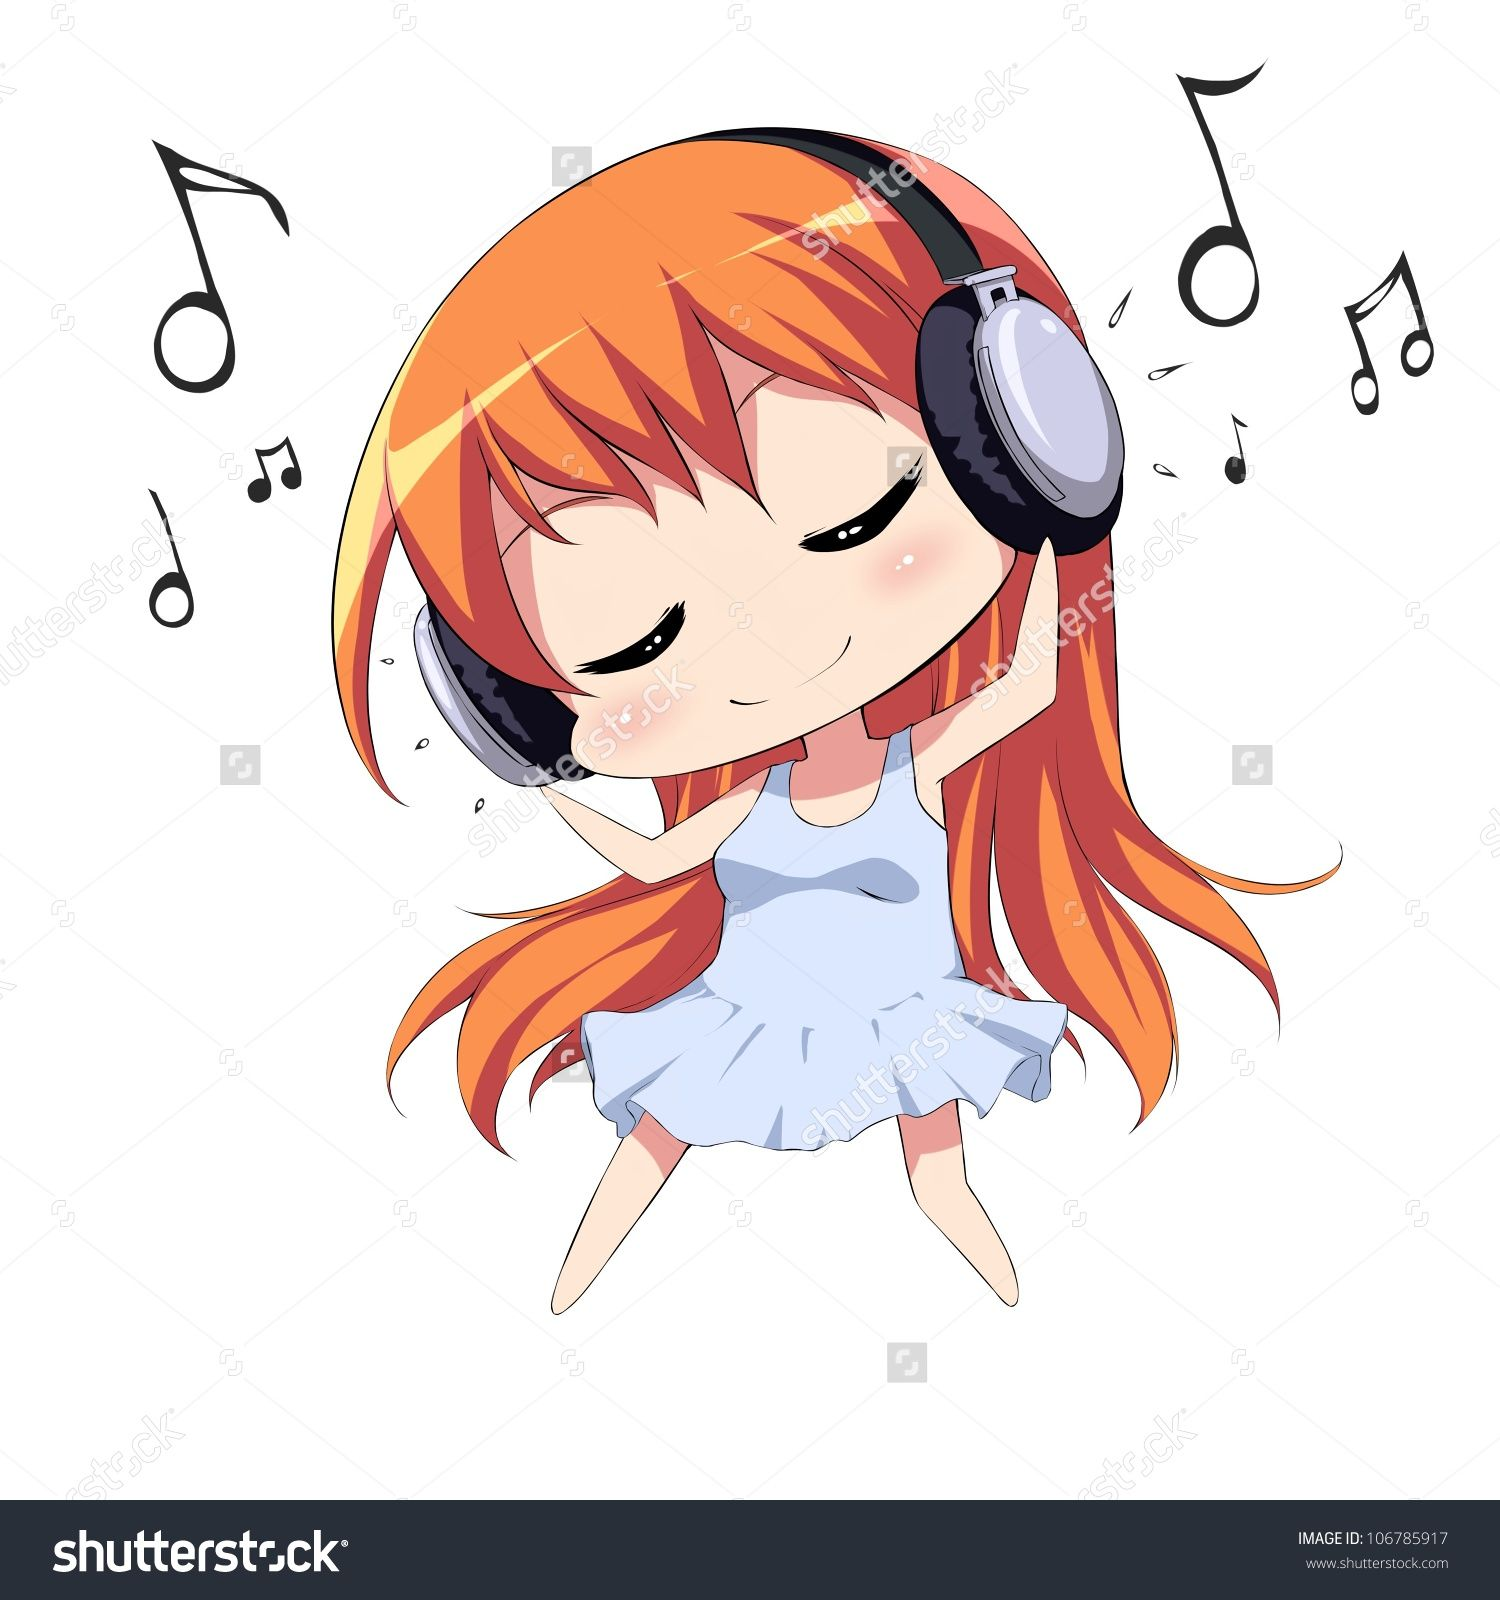 Anime Listening to Music Clip Art Creative logo